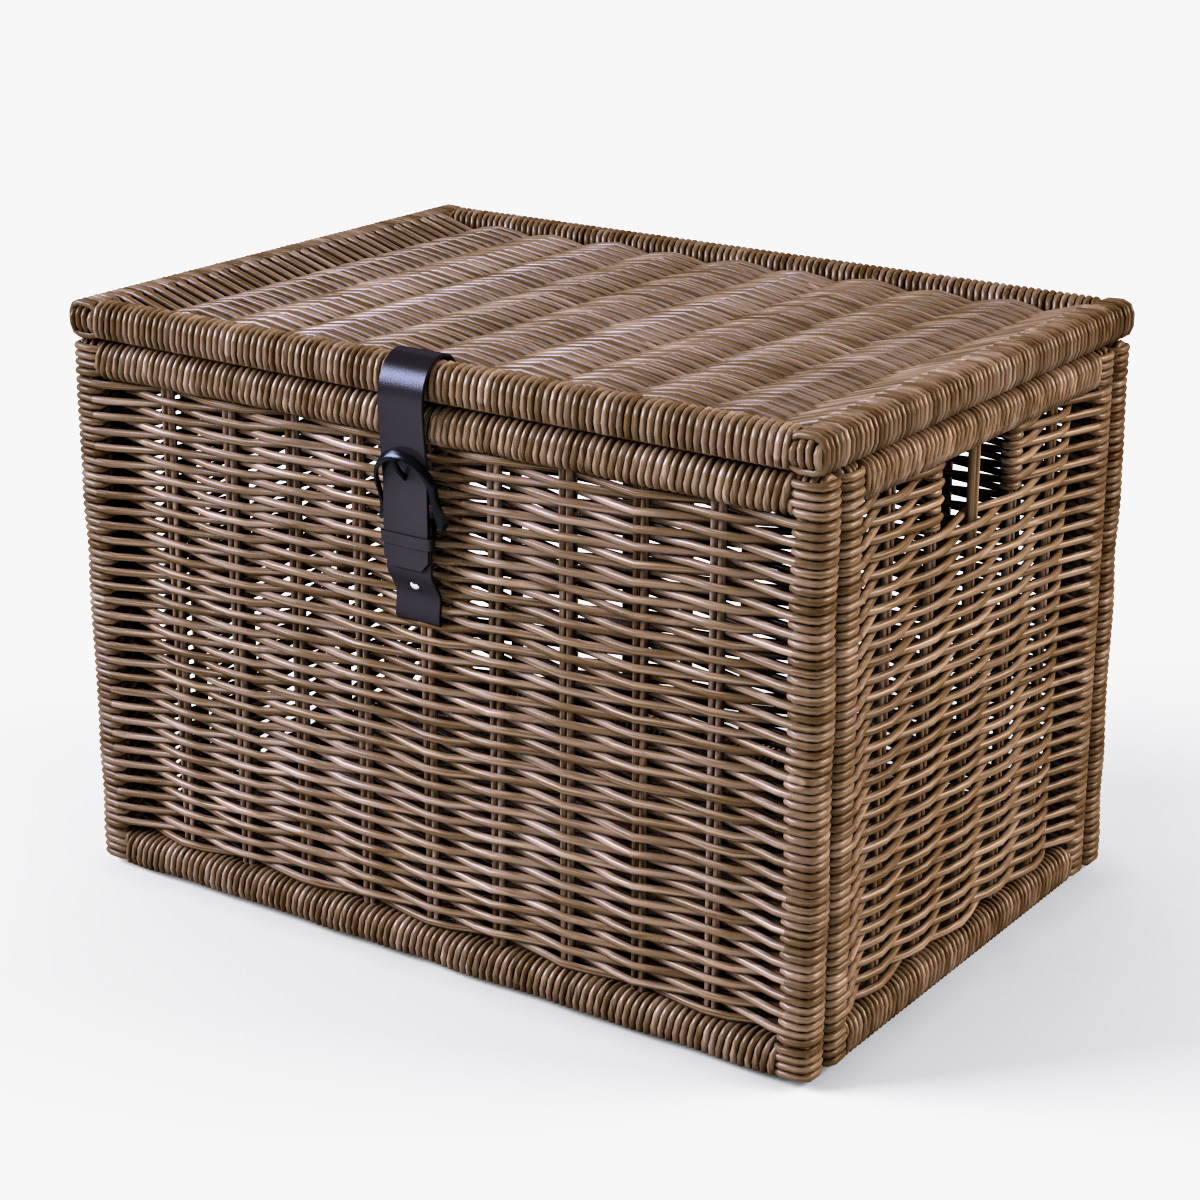 Rattan Ikea Wicker Rattan Chest Ikea Byholma